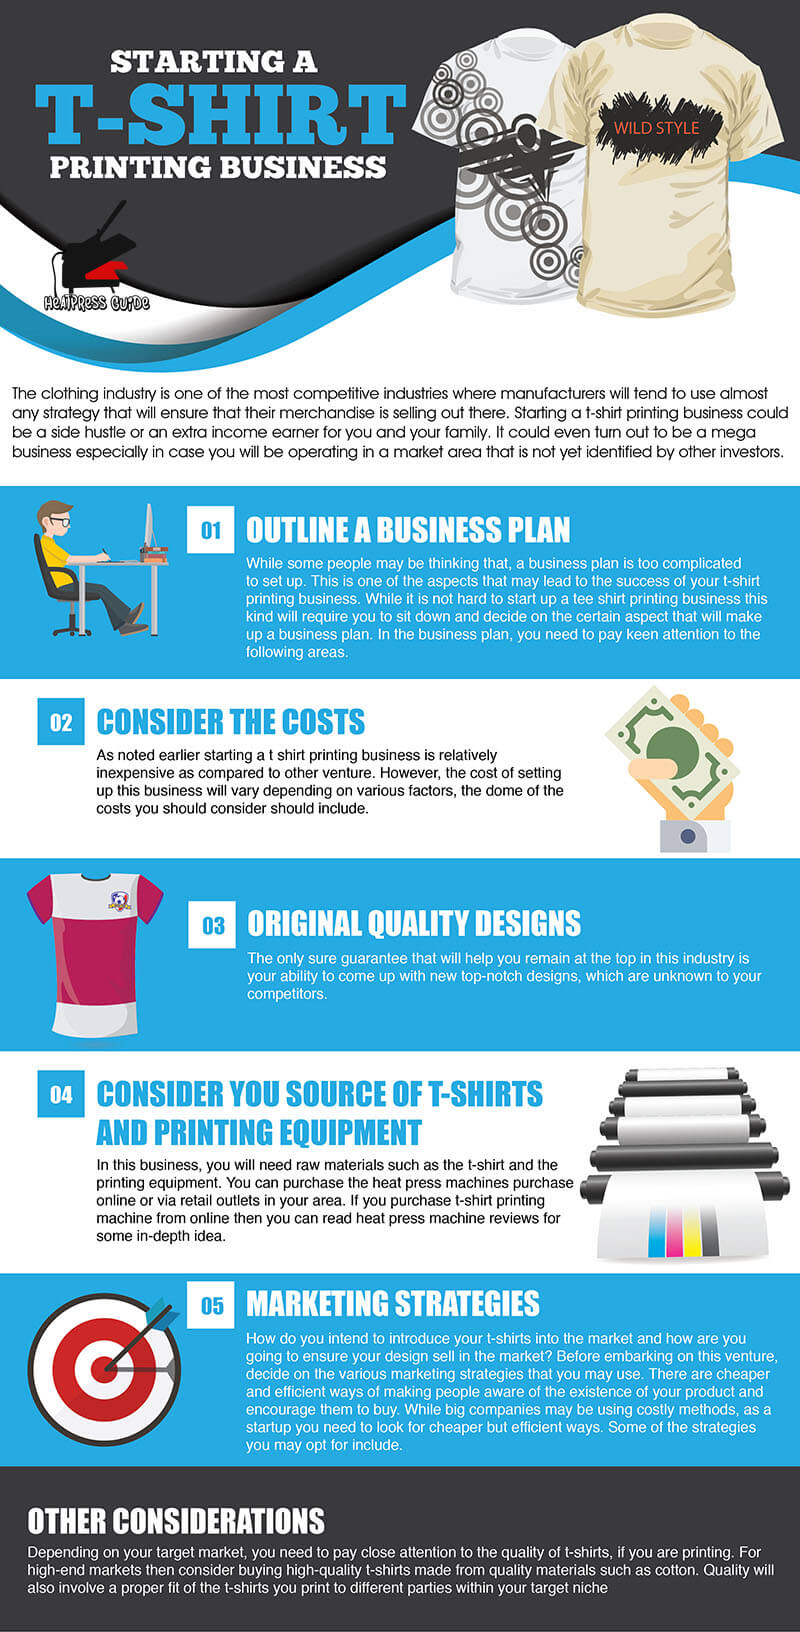 09a794830728 Starting a t-shirt printing business - What You Need to Know